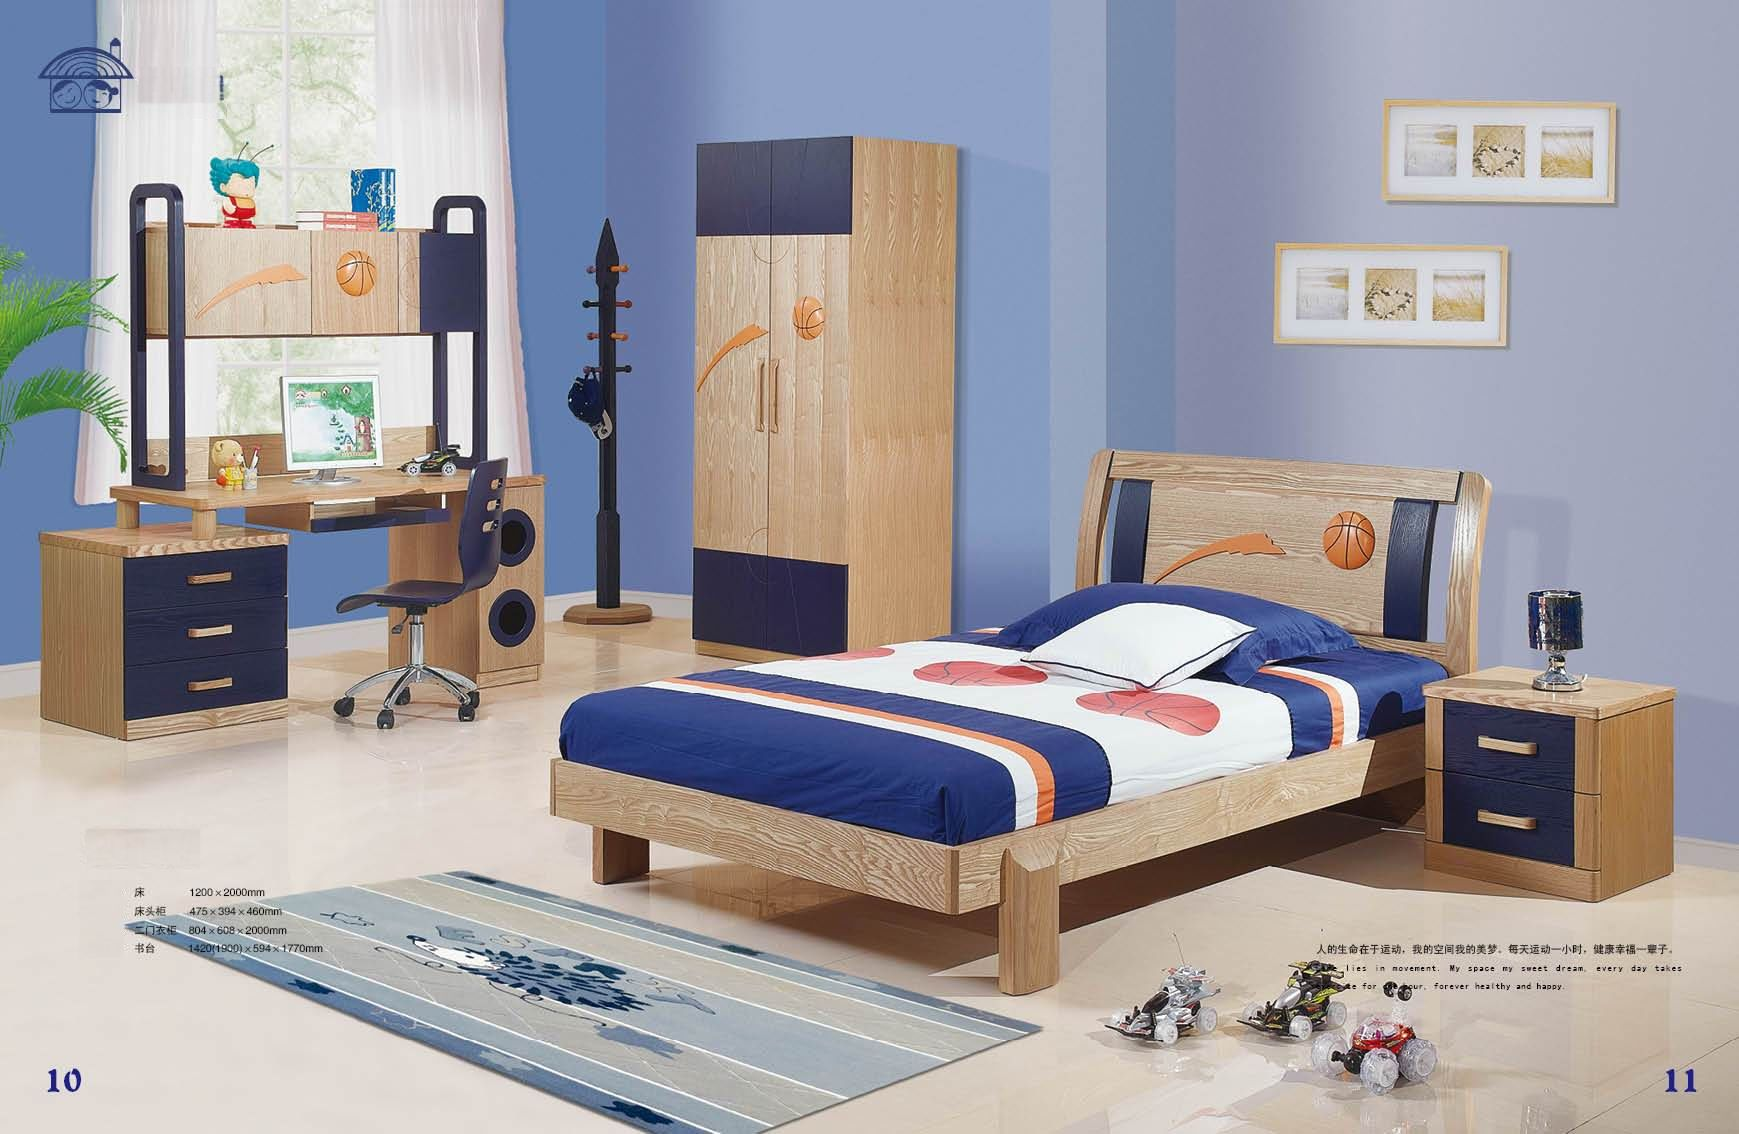 Hot Item Kids Bedroom Set Jkd 20120 Toddler Bedroom